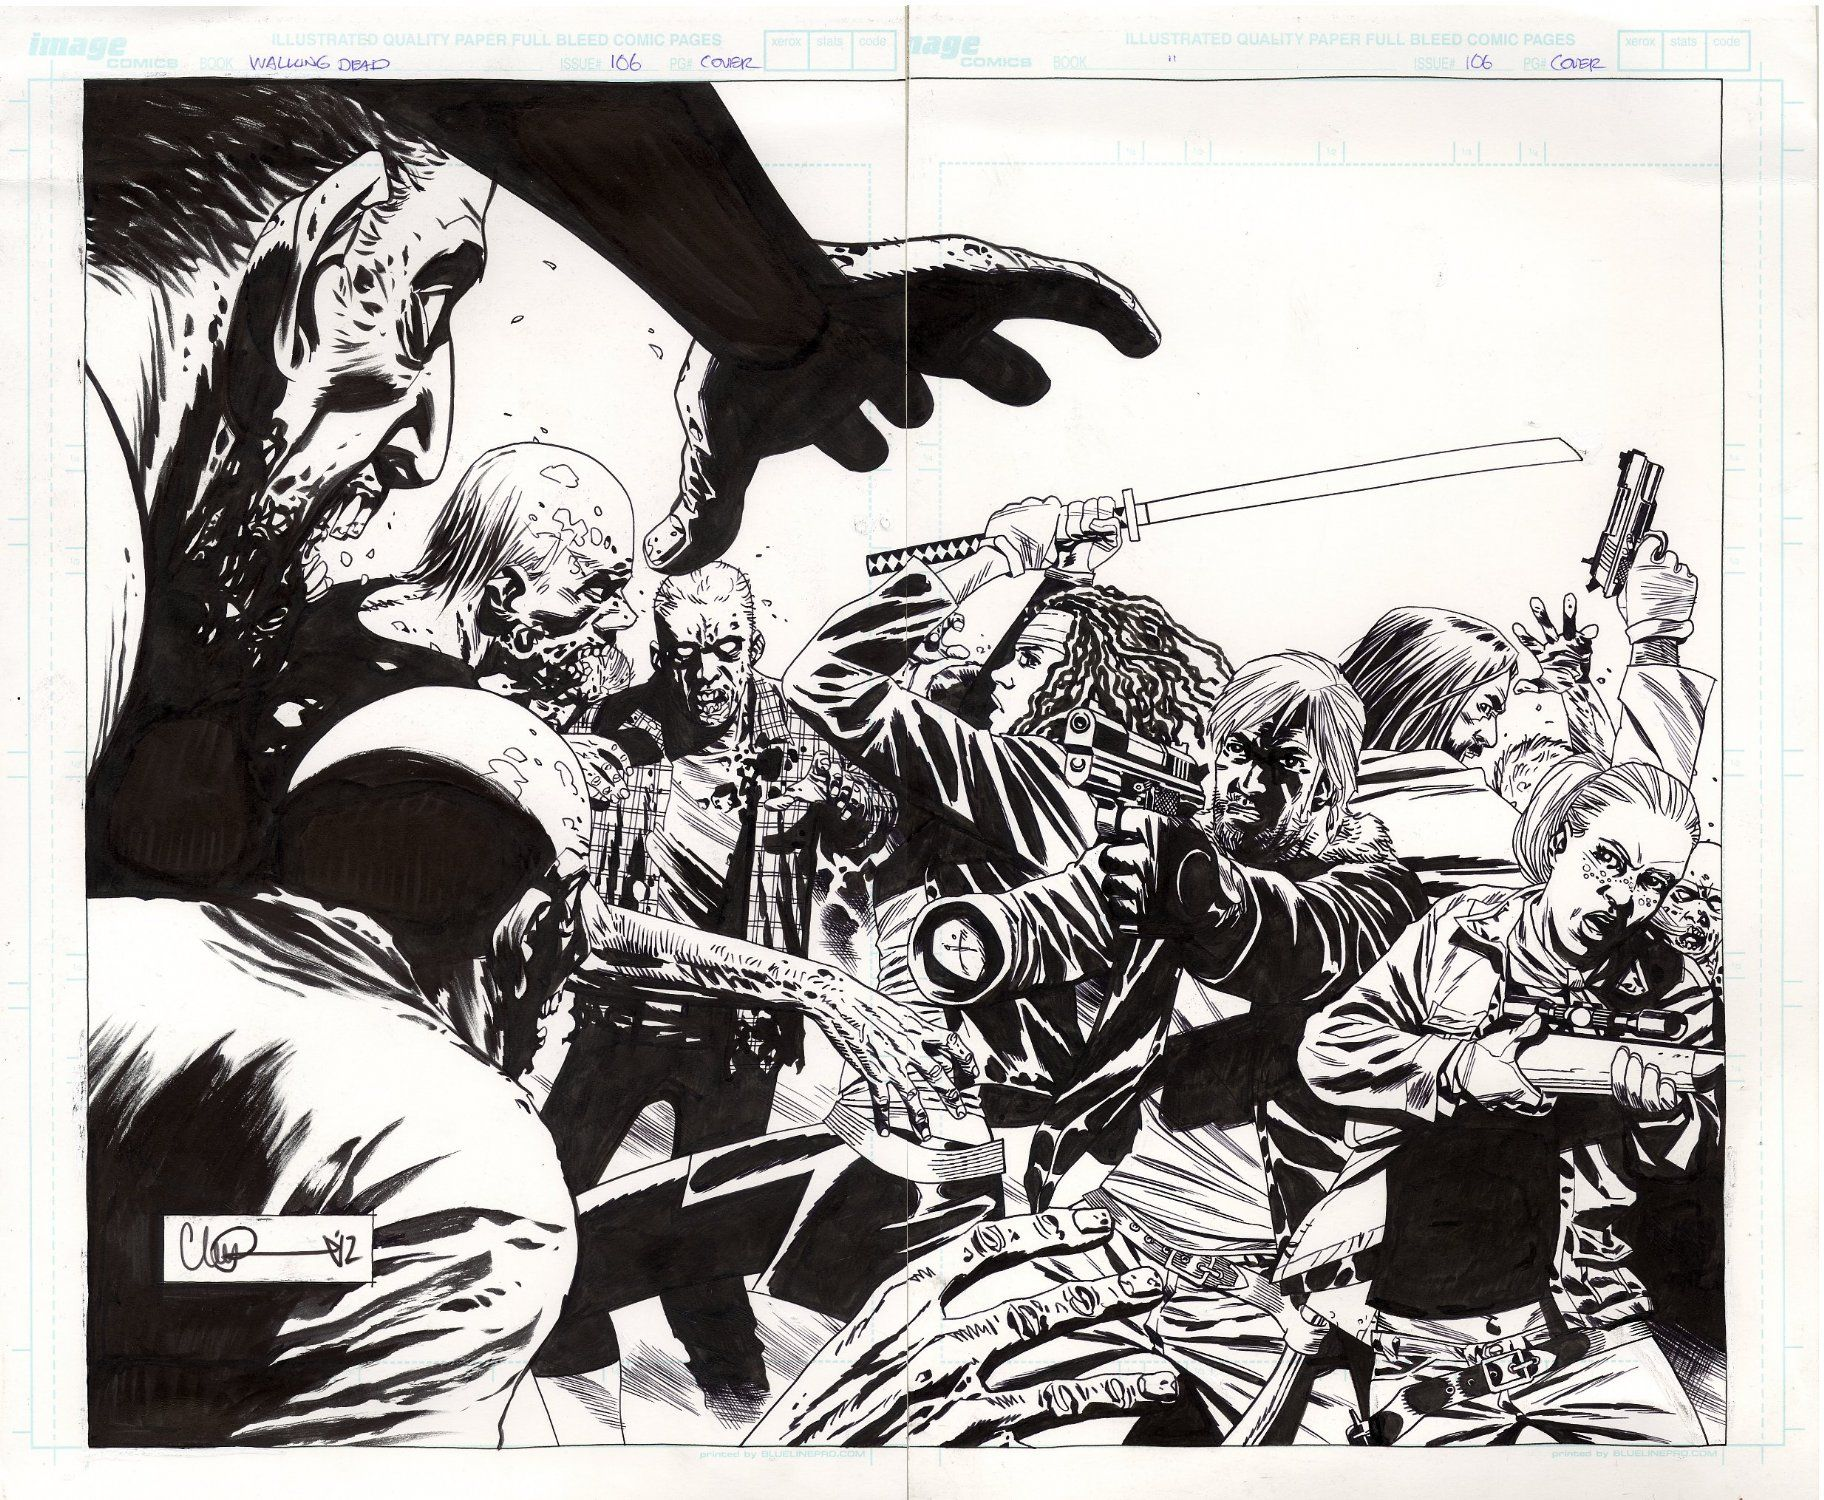 Charlie Adlard - Walking Dead | COMICS | Pinterest ...